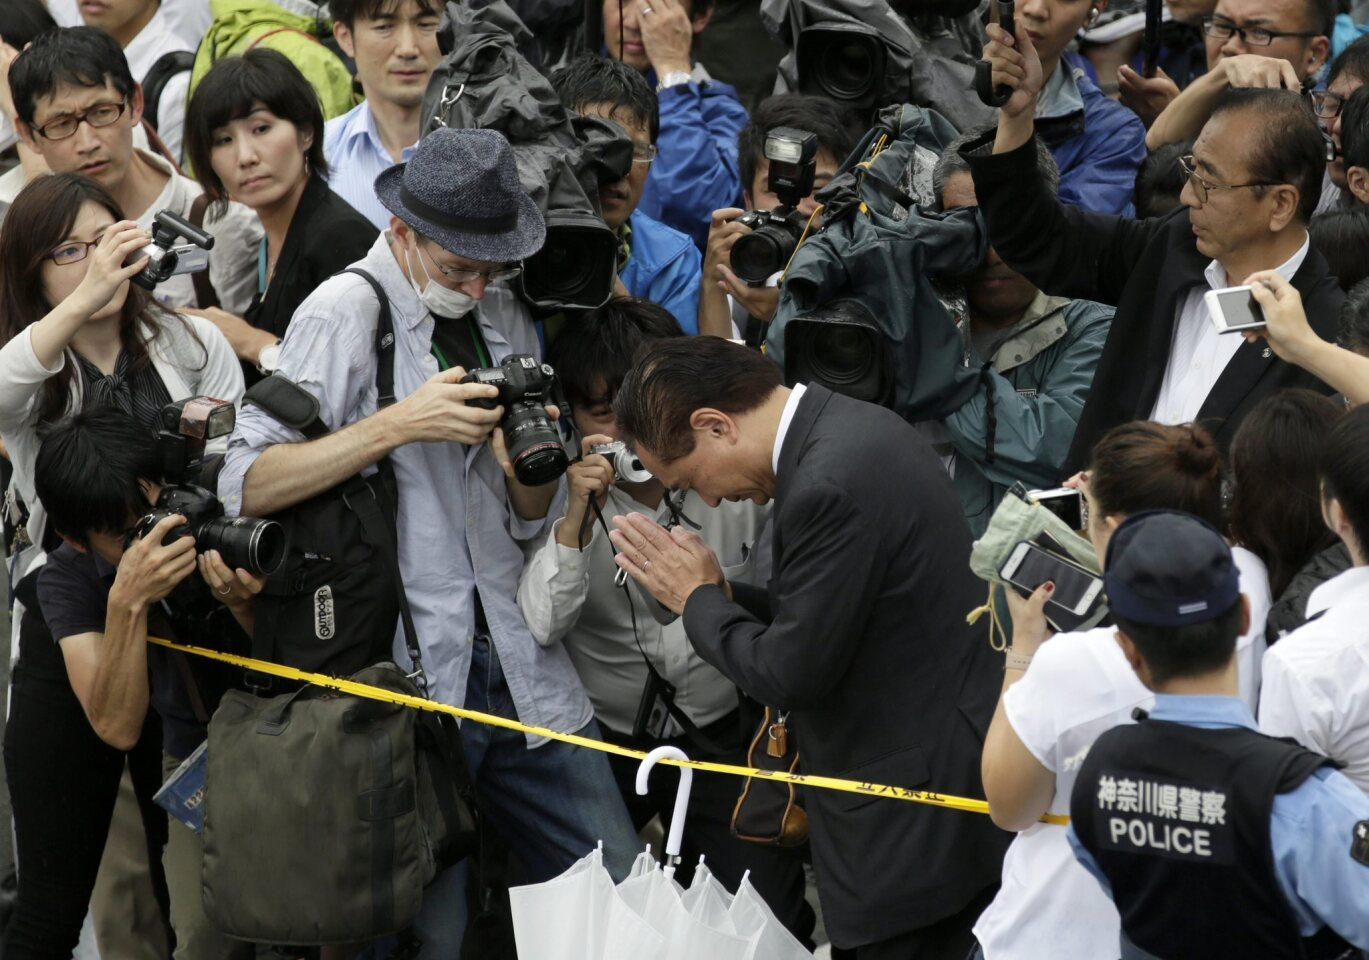 Journalists surround Kanazawa Prefecture Gov. Yuji Kuroiwa as he offers a prayer for victims killed at a residential-care facility for disabled people in Sagamihara, near Tokyo.